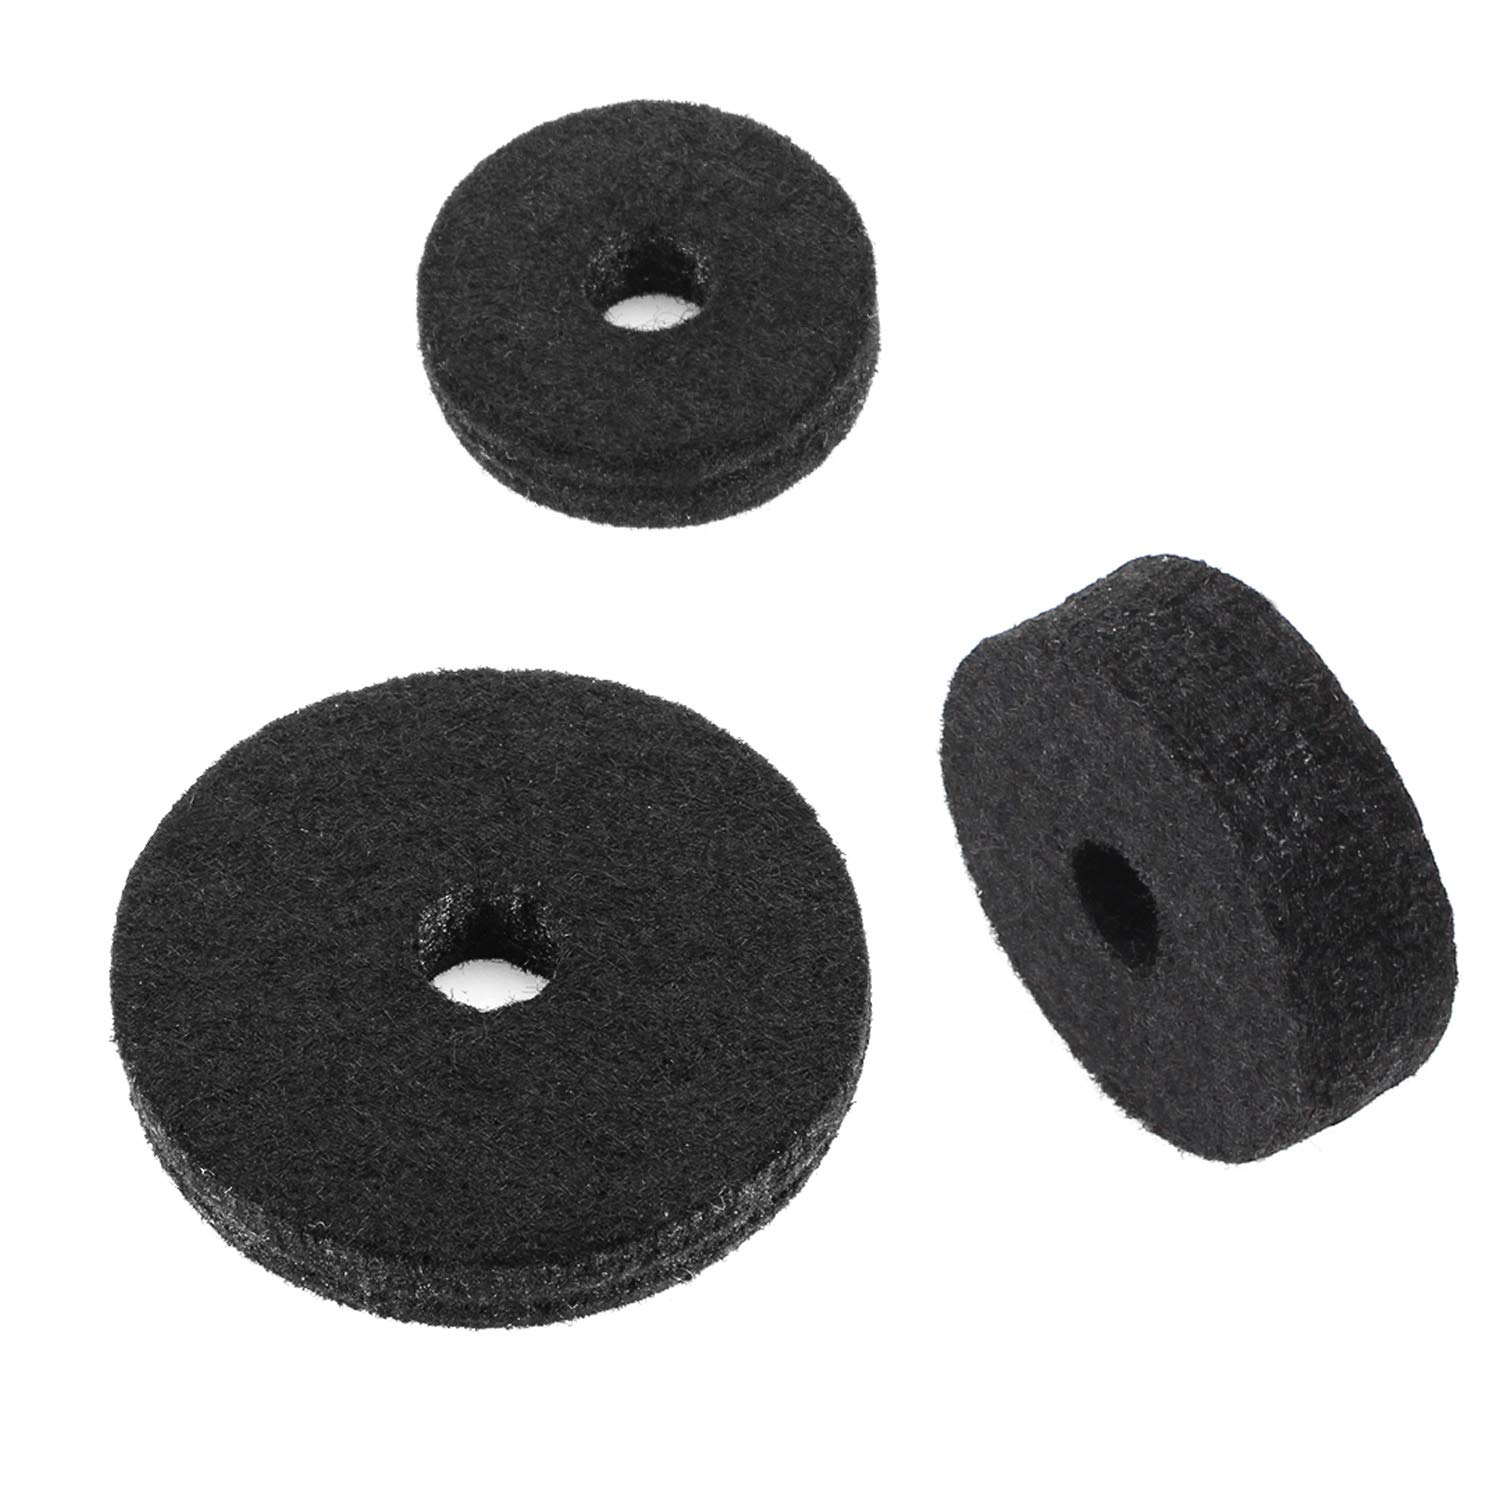 Washer,Sleeves and Base Wing Nuts Replacement for Drum Set SelfTek ...